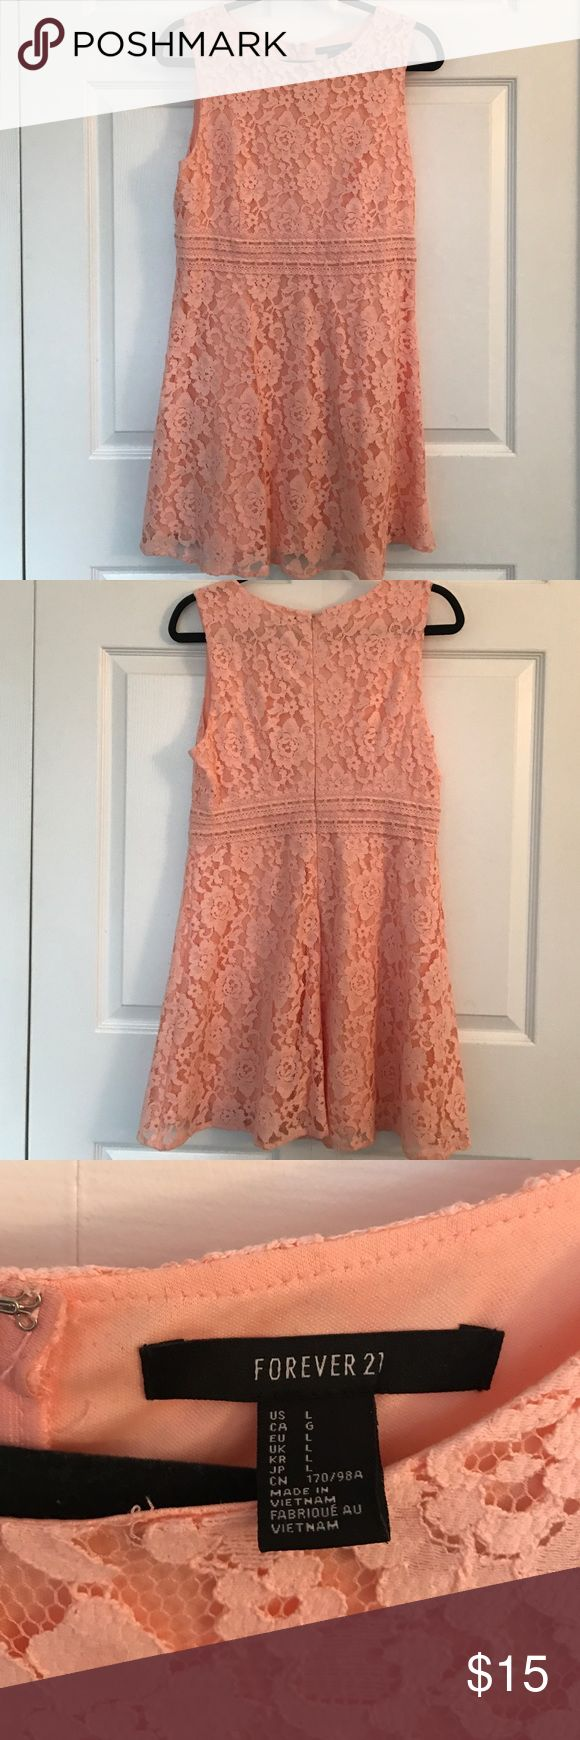 Forever 21 Peach Lace Dress Only wore once. In great condition. Size large. 72% cotton 28% nylon. From a smoke free and pet free home. Forever 21 Dresses